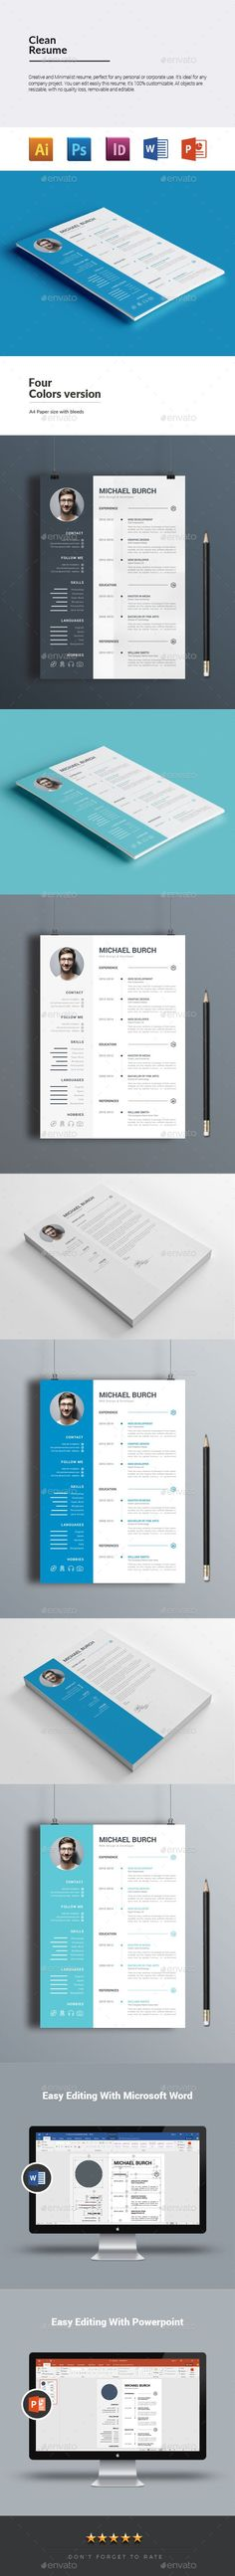 Resume Template, Resume cv and Cv template - microsoft word resume templates 2018